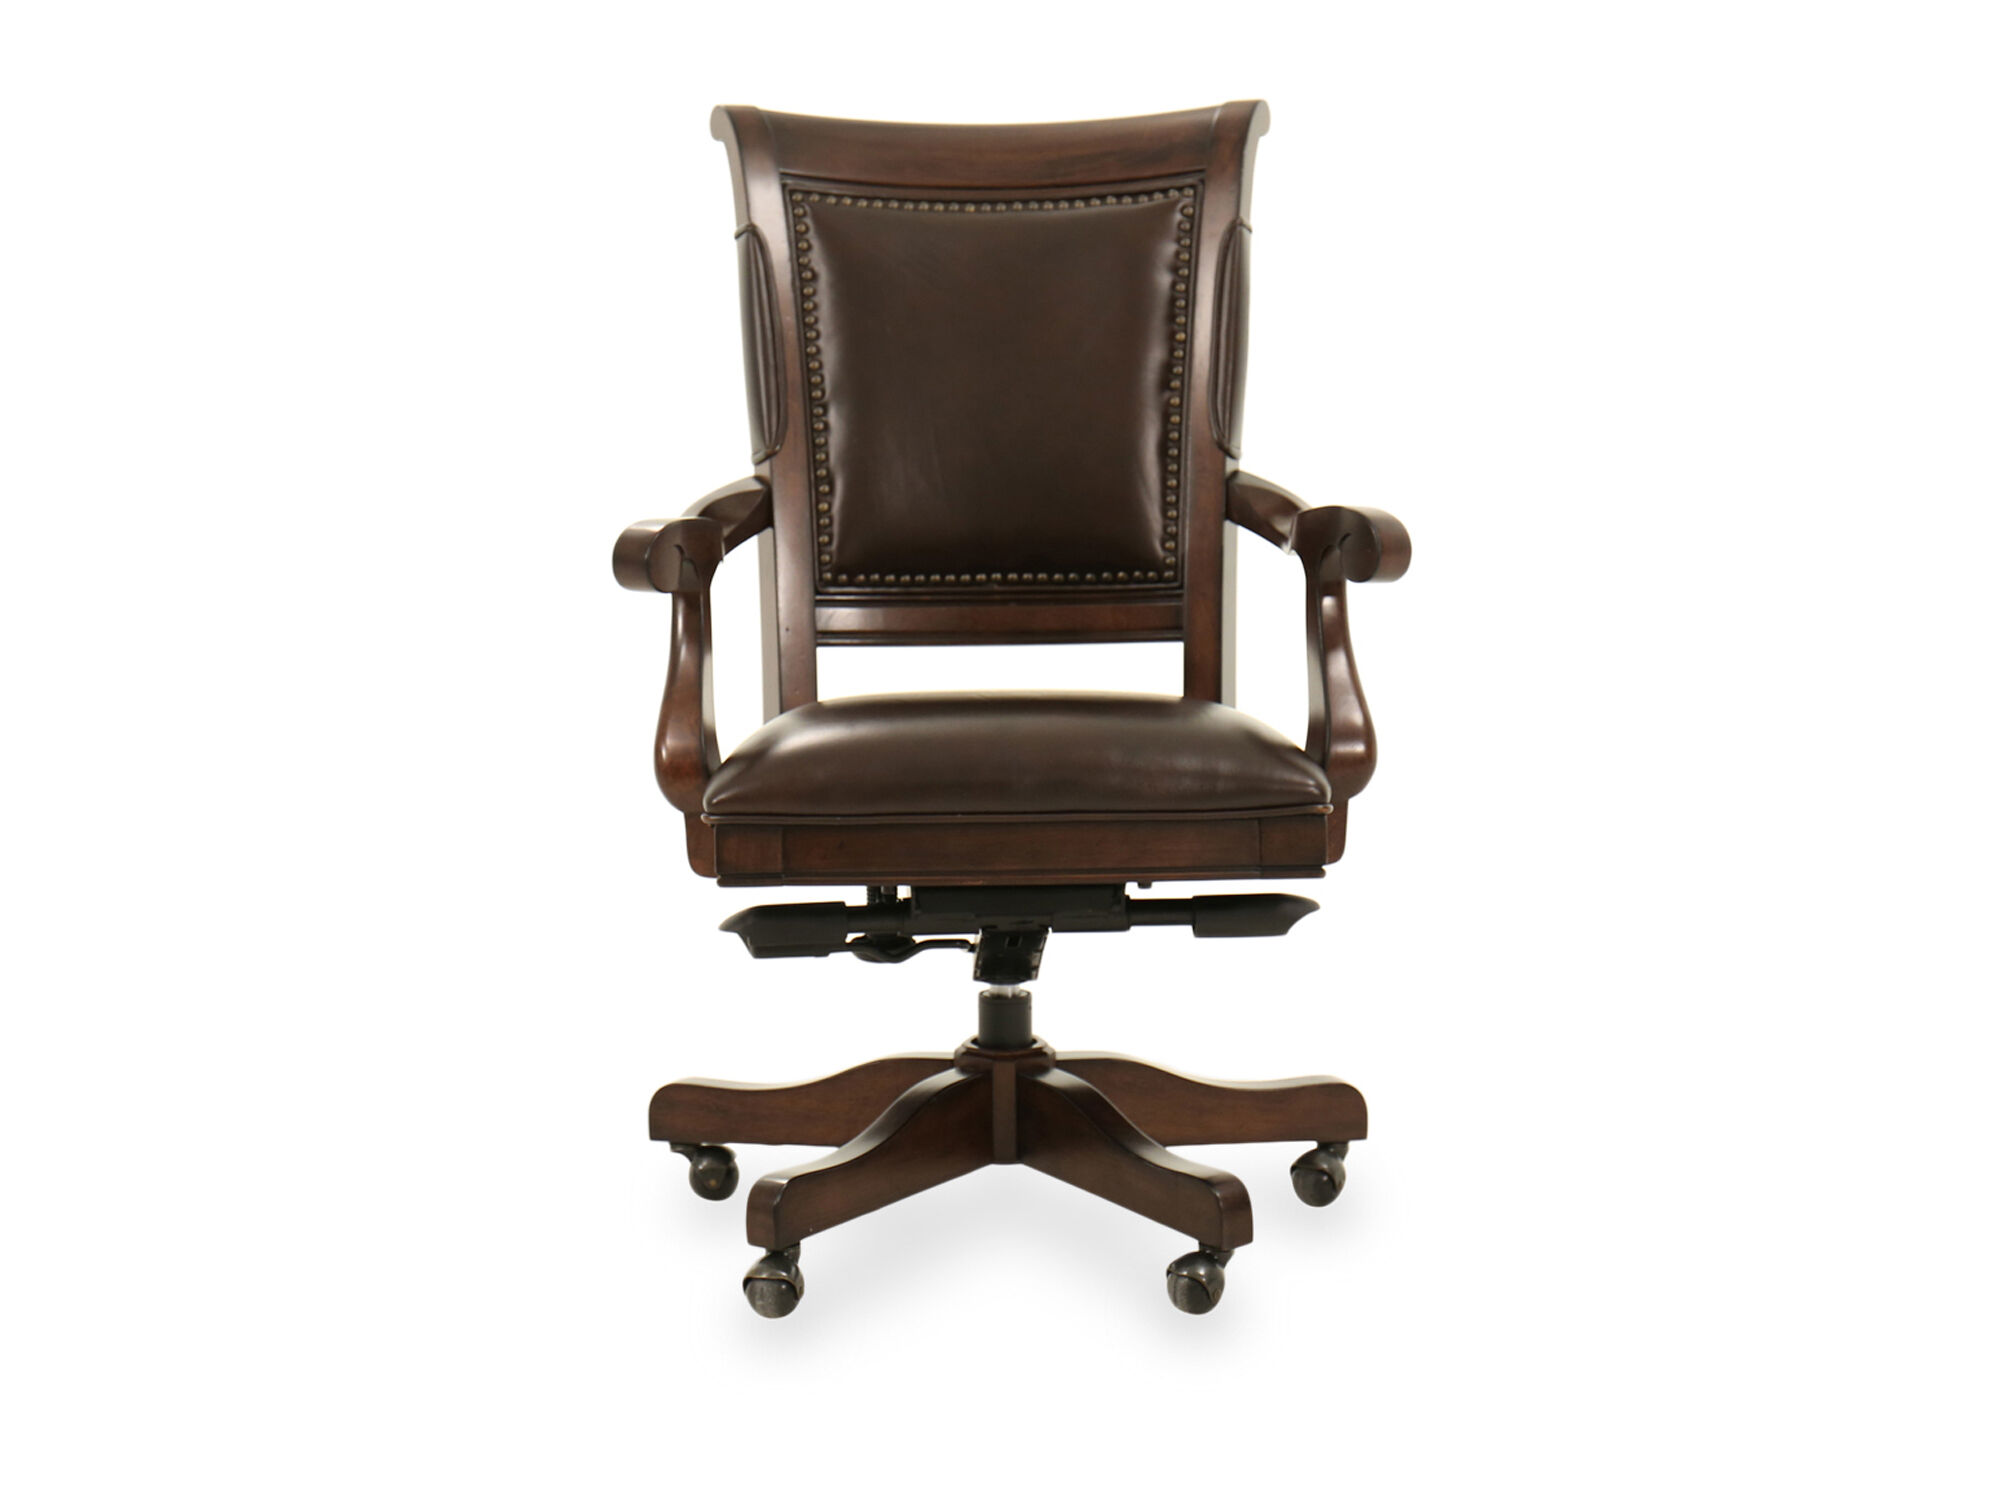 desk chair legs stool work five leg leather arm in brown mathis brothers